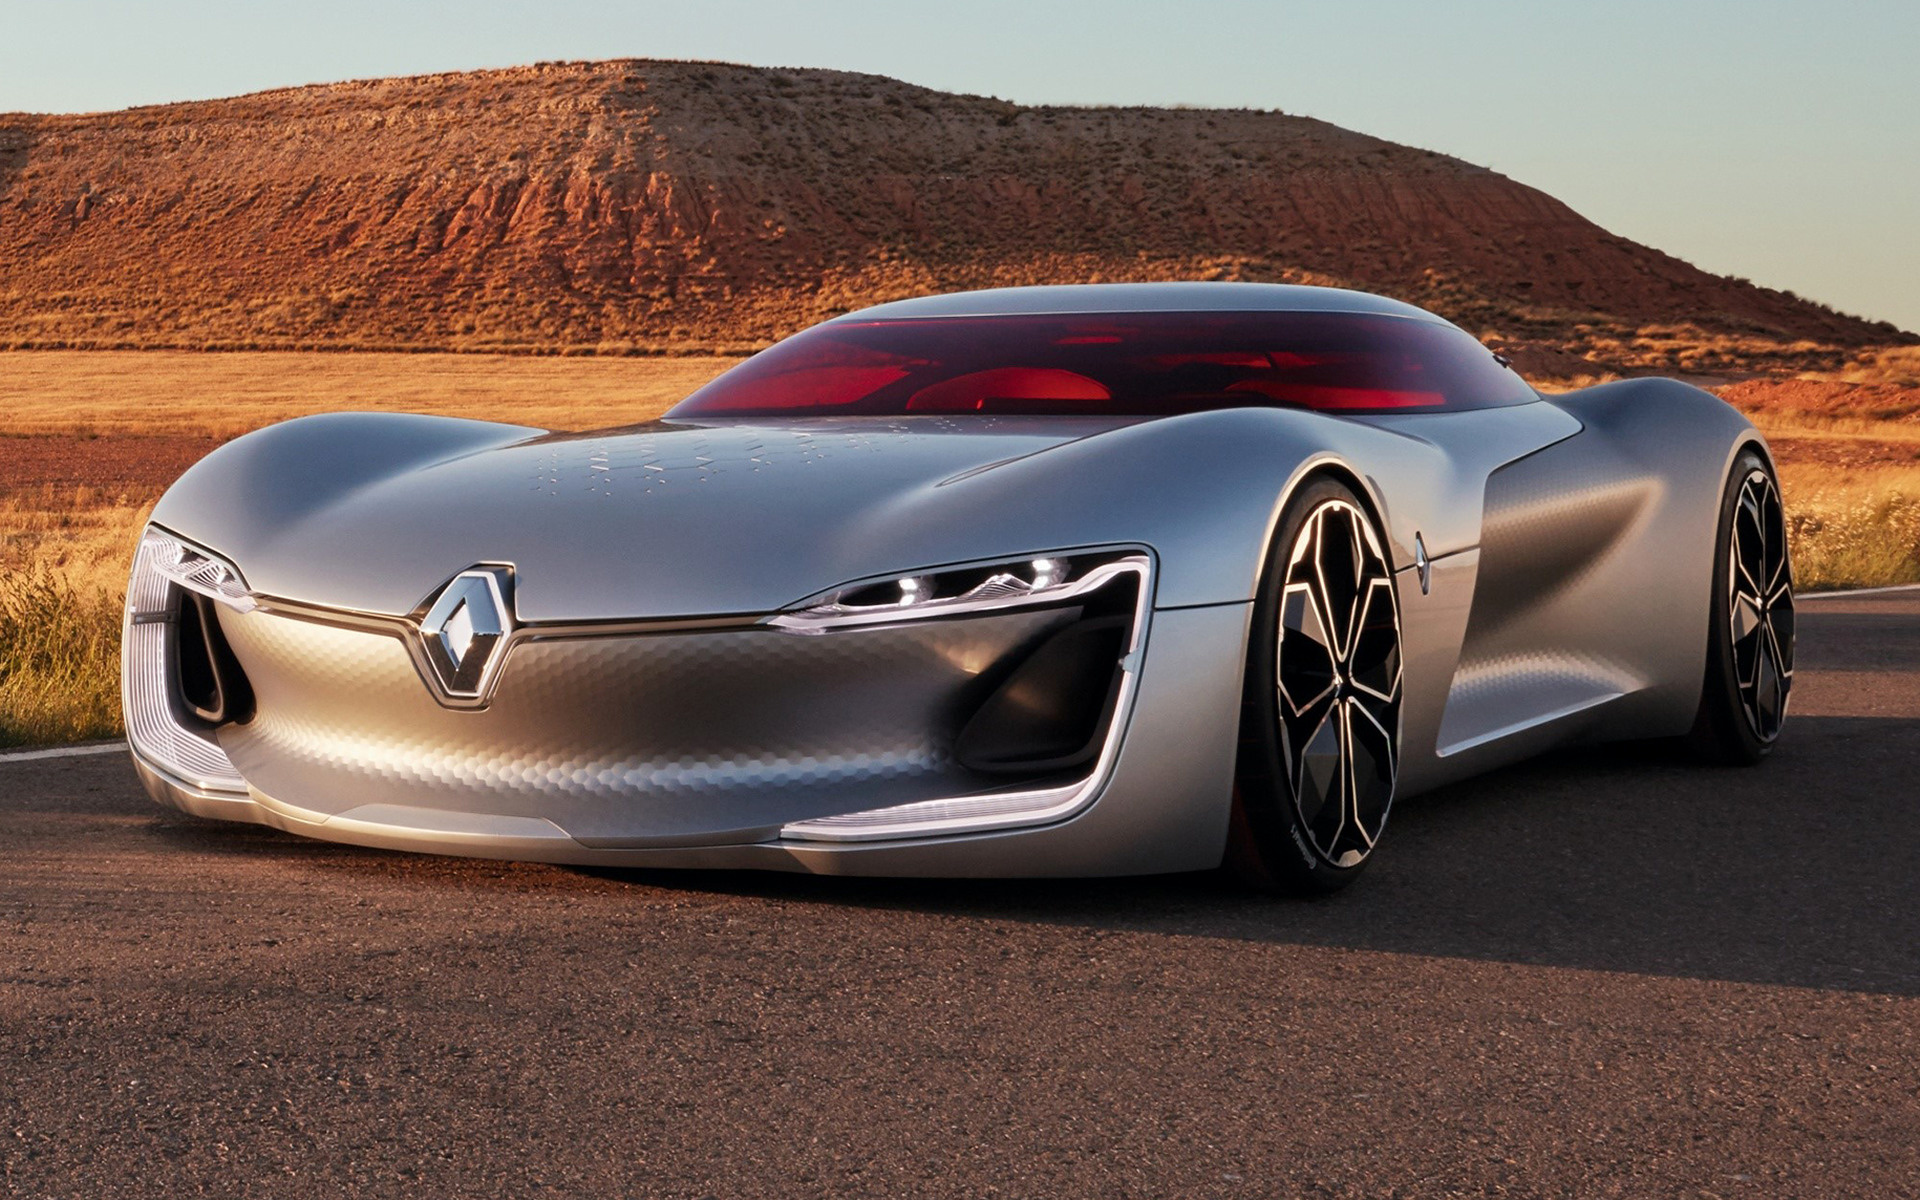 Car Wallpapers 4k Bentely 2016 Renault Trezor Concept Wallpapers And Hd Images